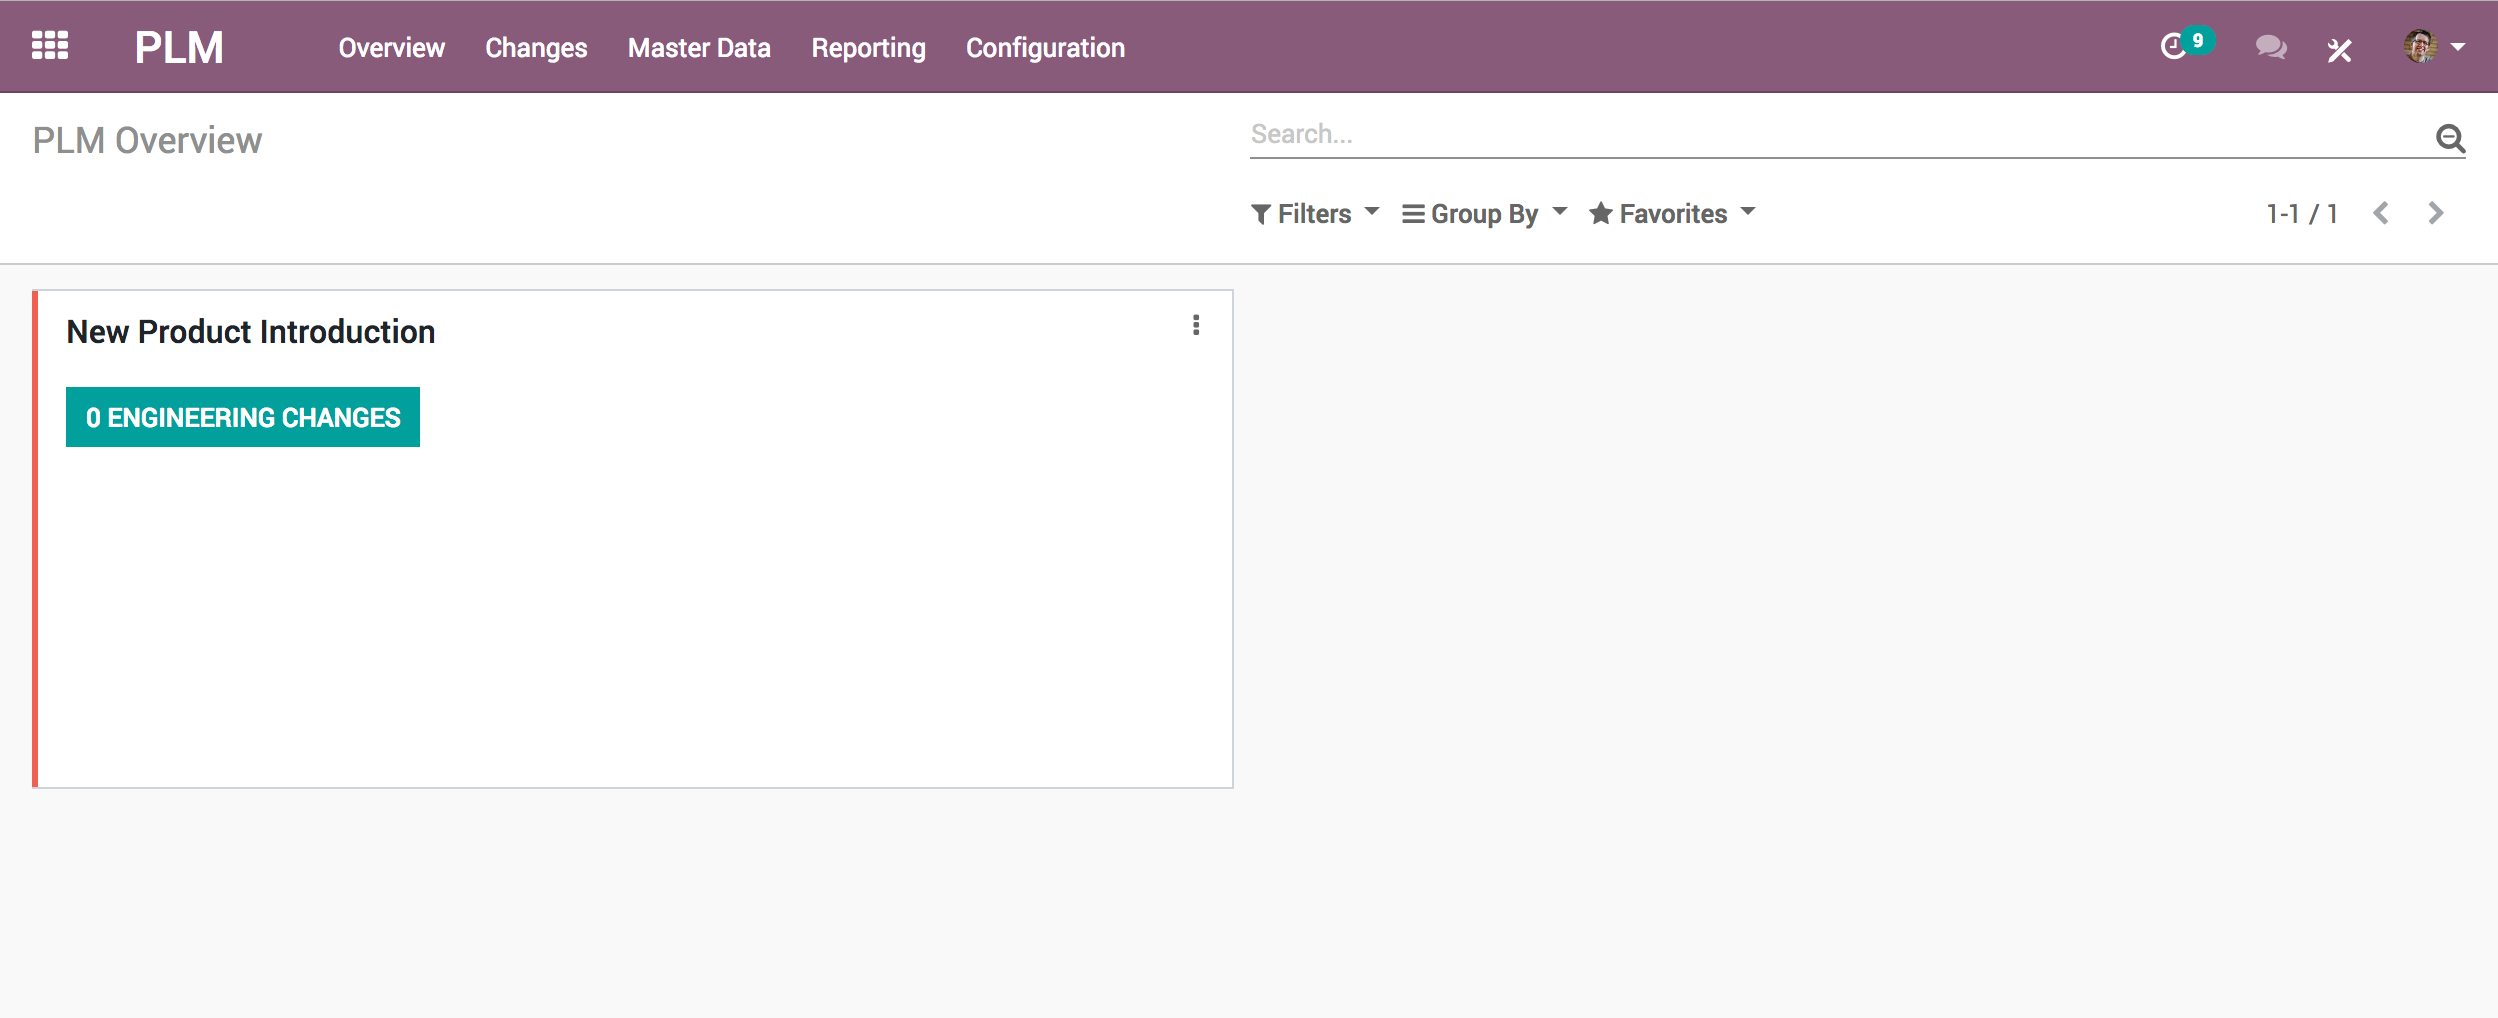 Odoo PLM Overview